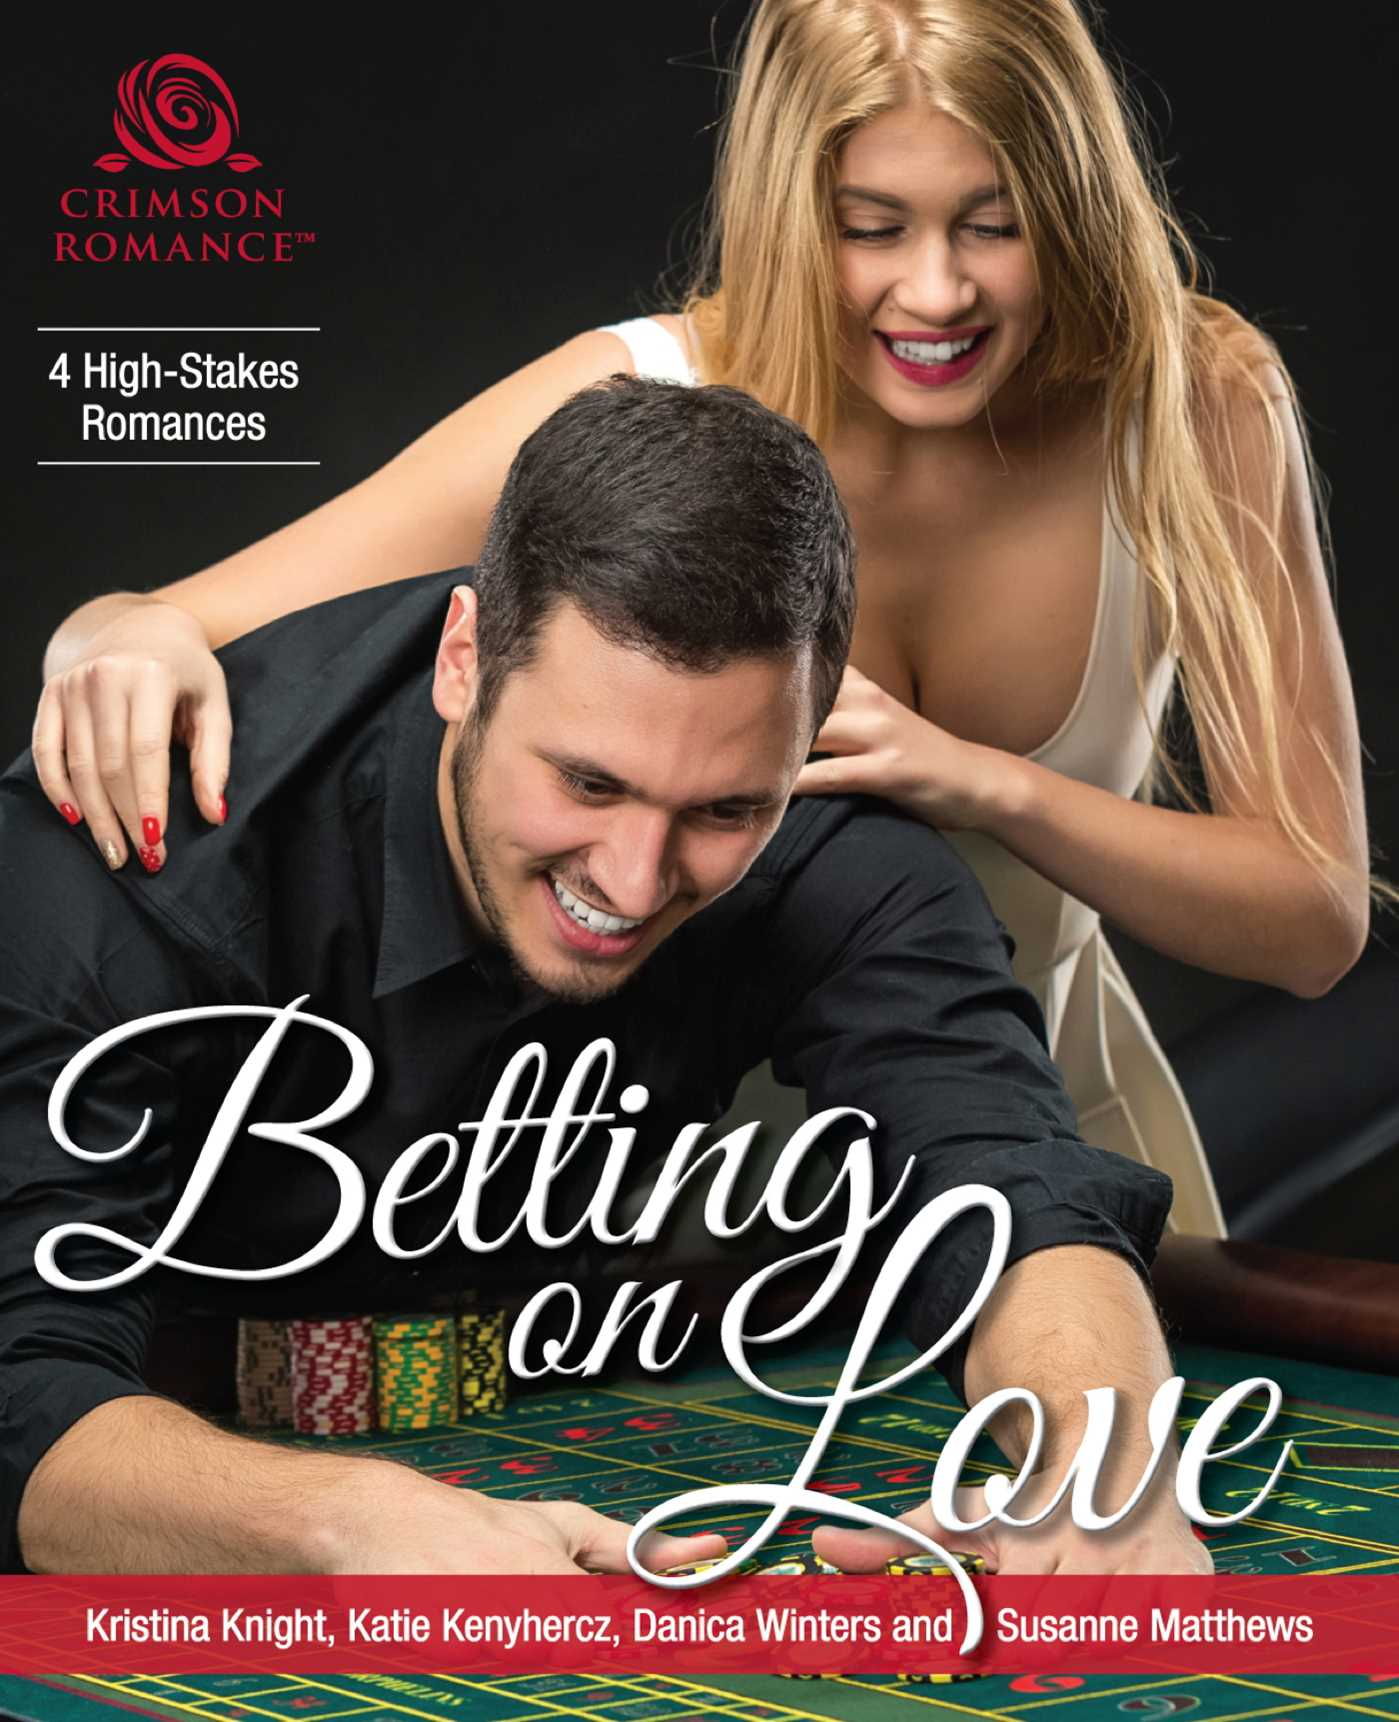 Betting on love 9781507200452 hr